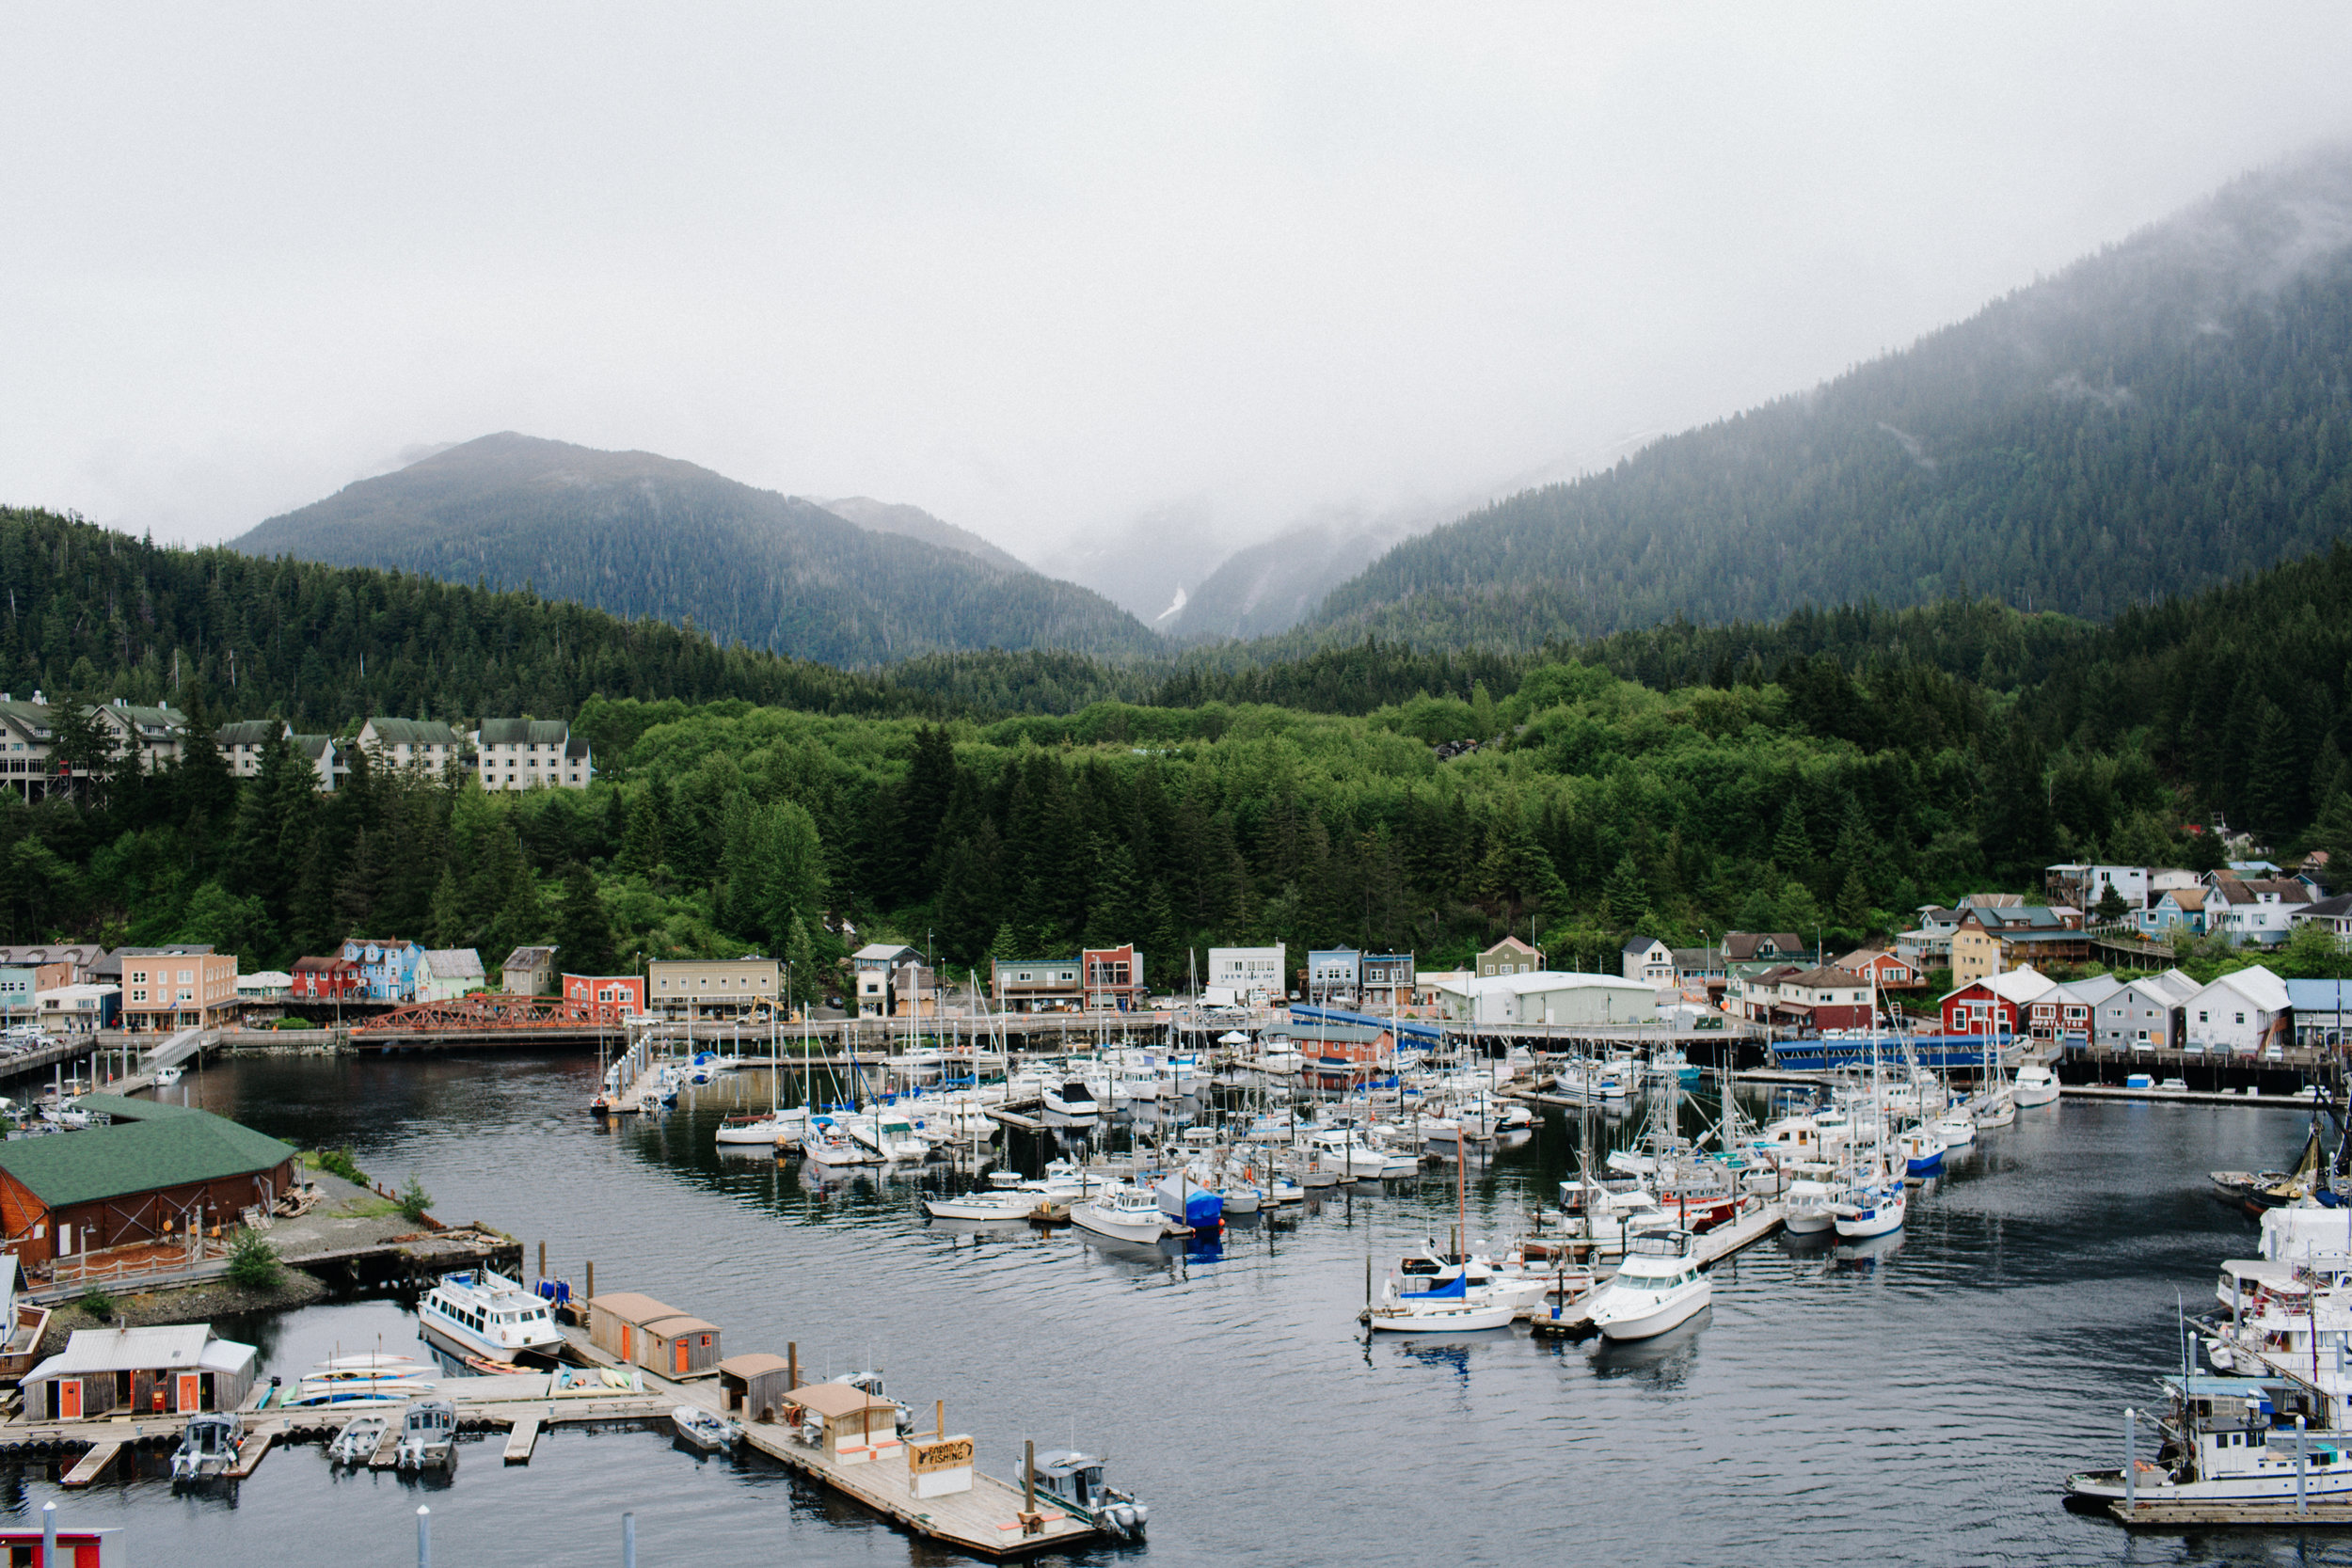 KetchikanAlaska4_TR2018 (40 of 44).jpg